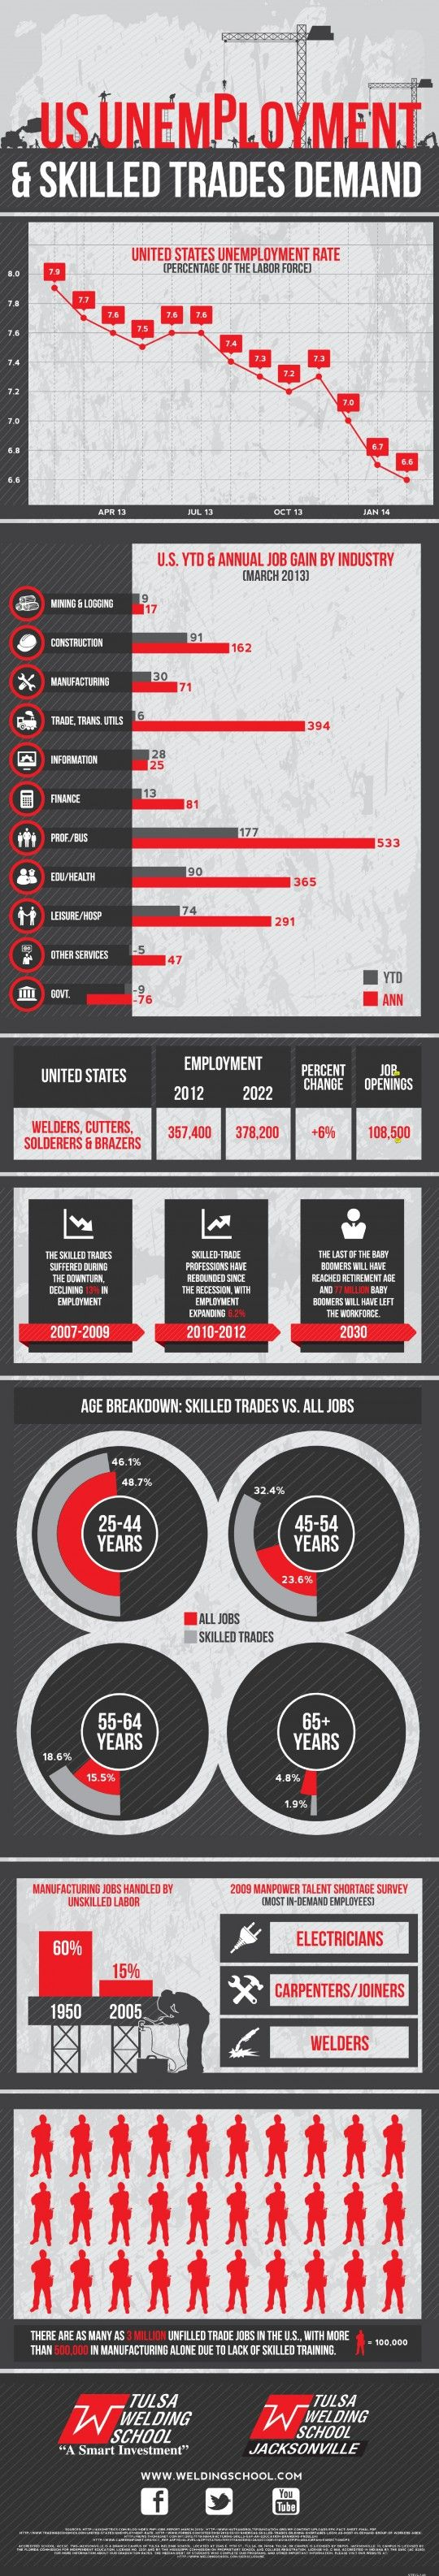 In this ingographic learn about the US Unemployment & Skilled Trades demand currently going on in the skills gap in manufacturing.